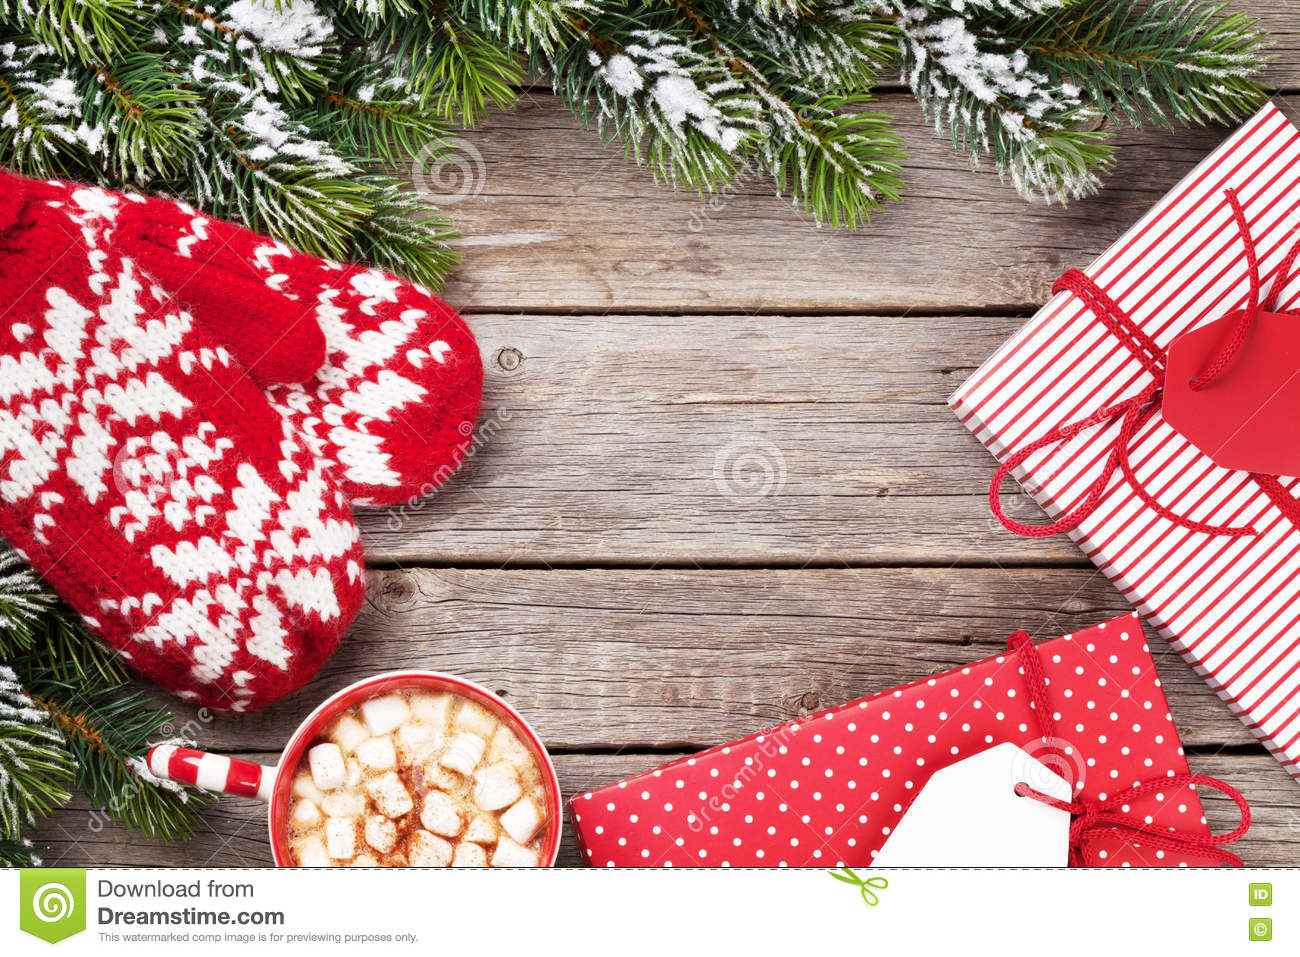 Christmas Background With Tree, Gifts, Hot Chocolate Stock Photo ...